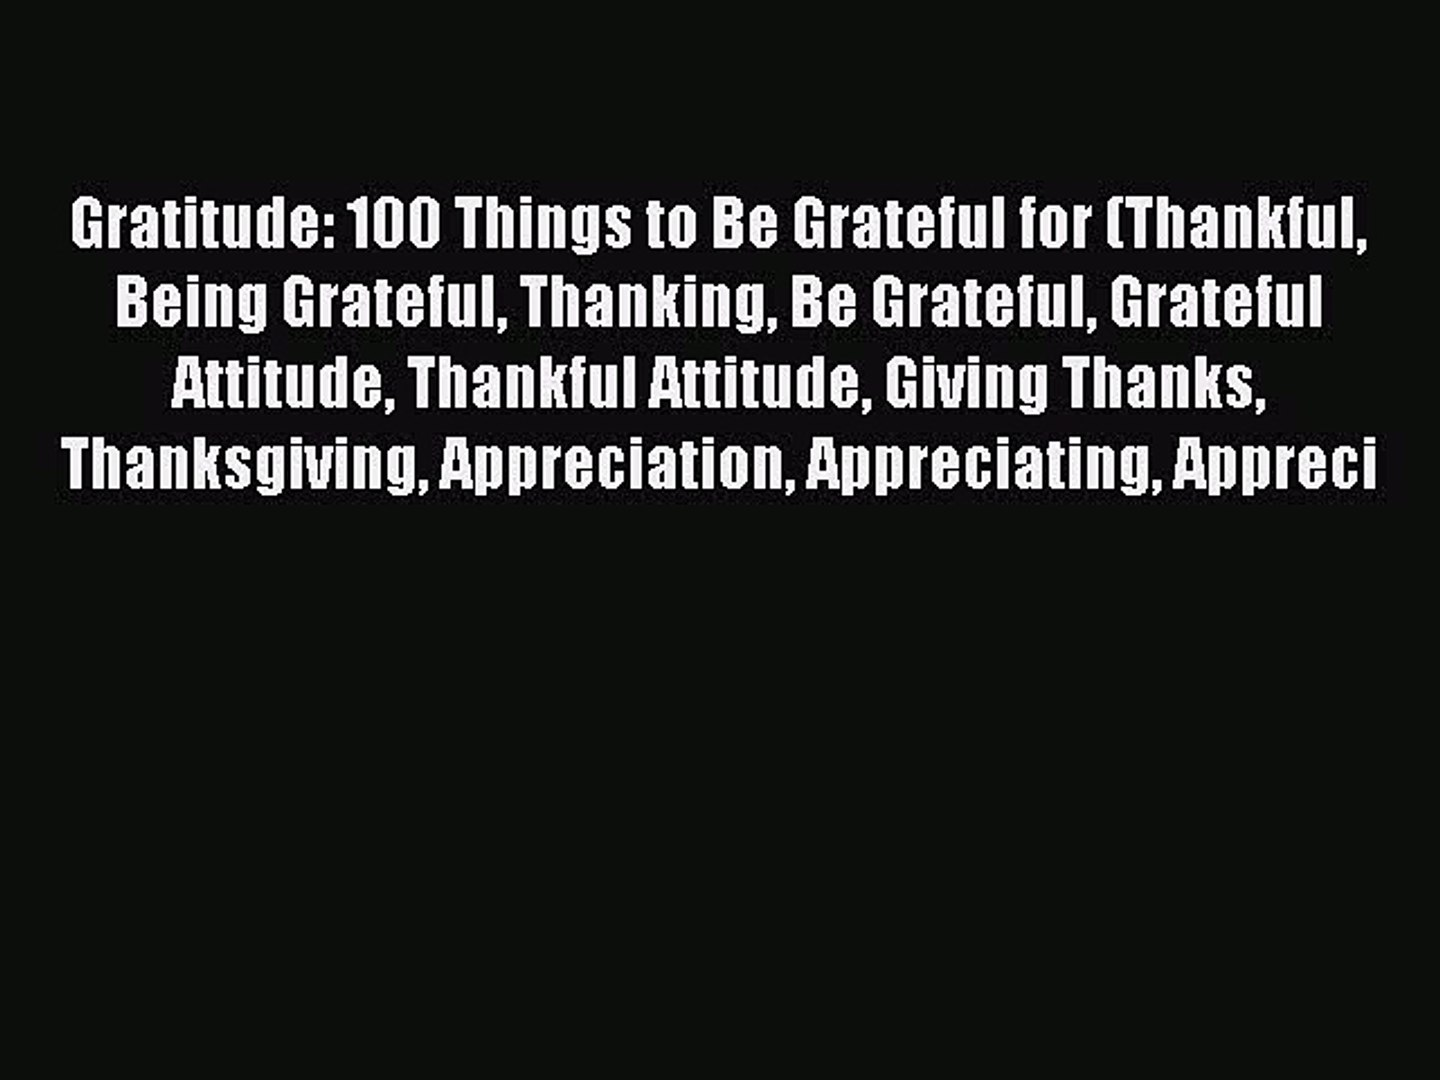 Download Gratitude: 100 Things to Be Grateful for (Thankful Being Grateful Thanking Be Grateful